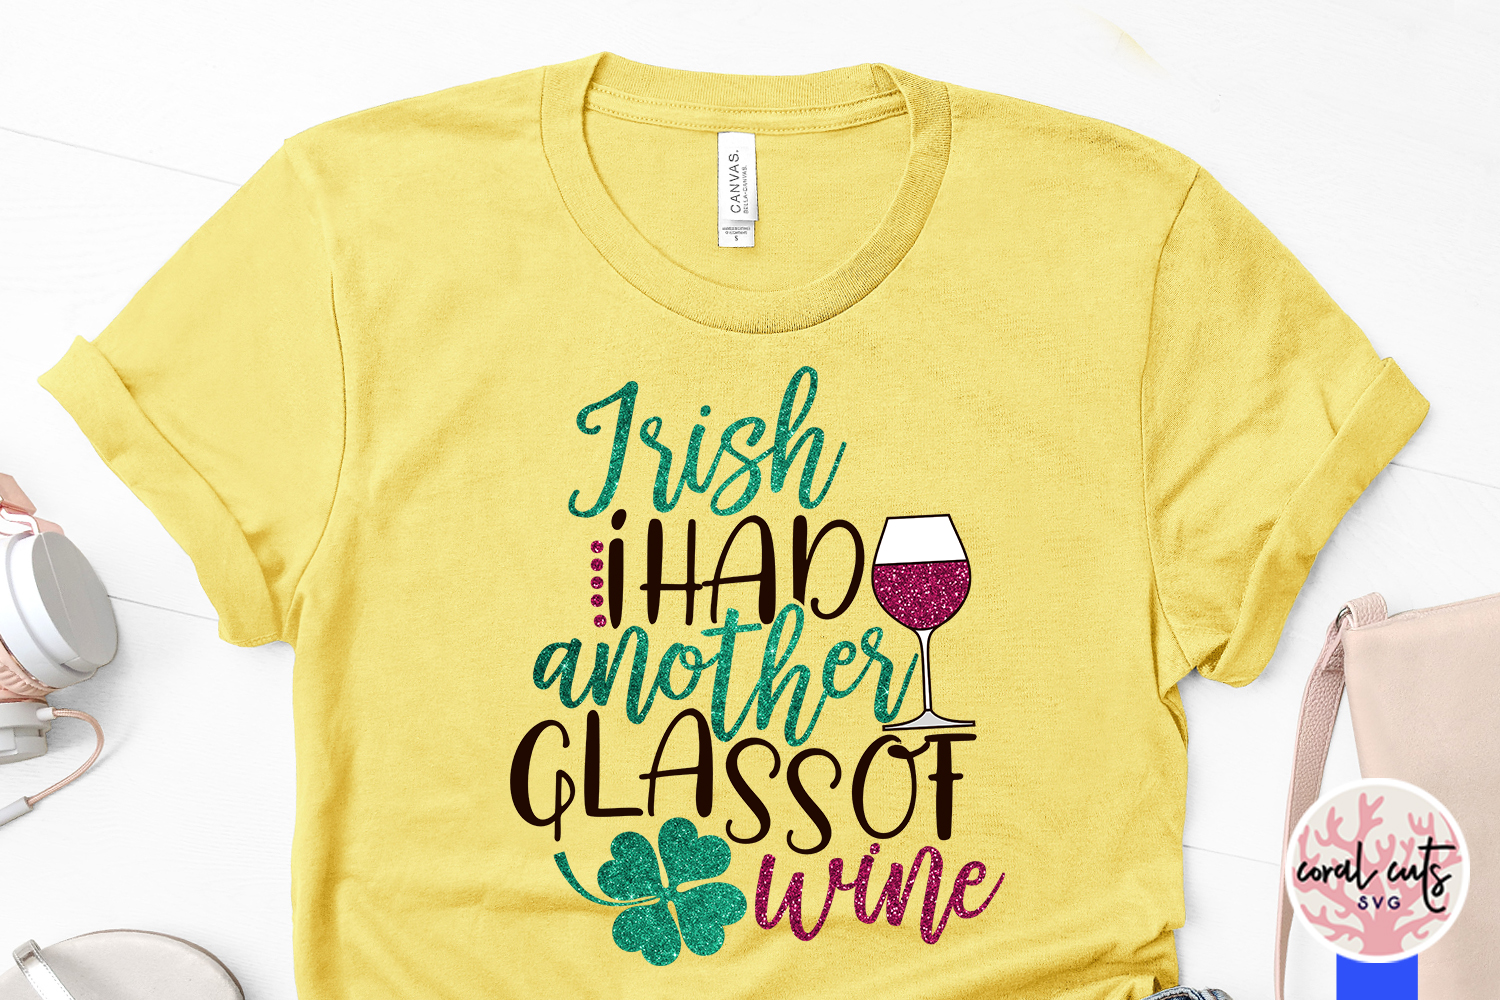 Irish I had another glass of wine - St. Patrick's Day SVG example image 3